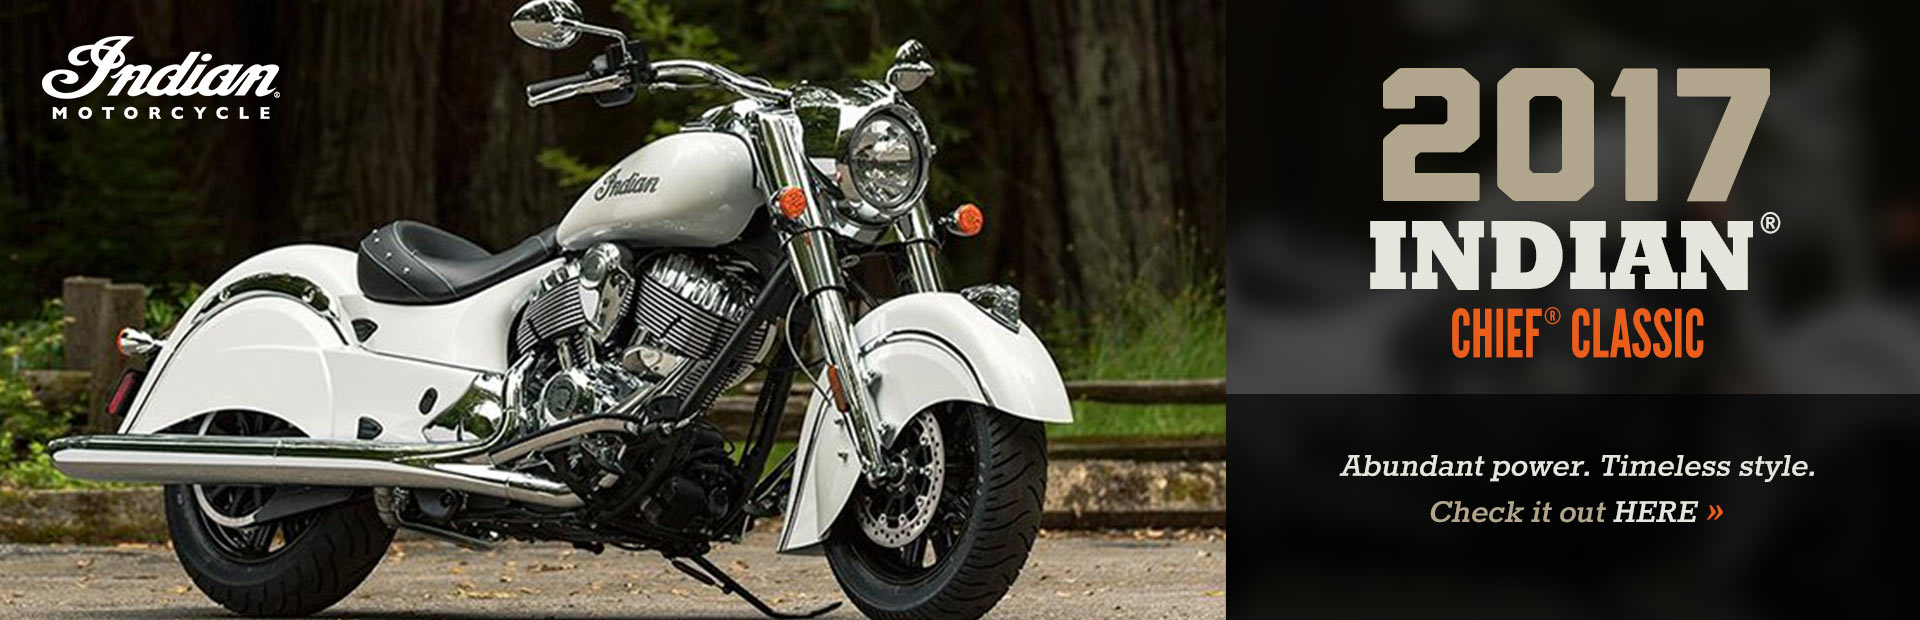 2017 Indian® Chief® Classic: Click here to view the model.